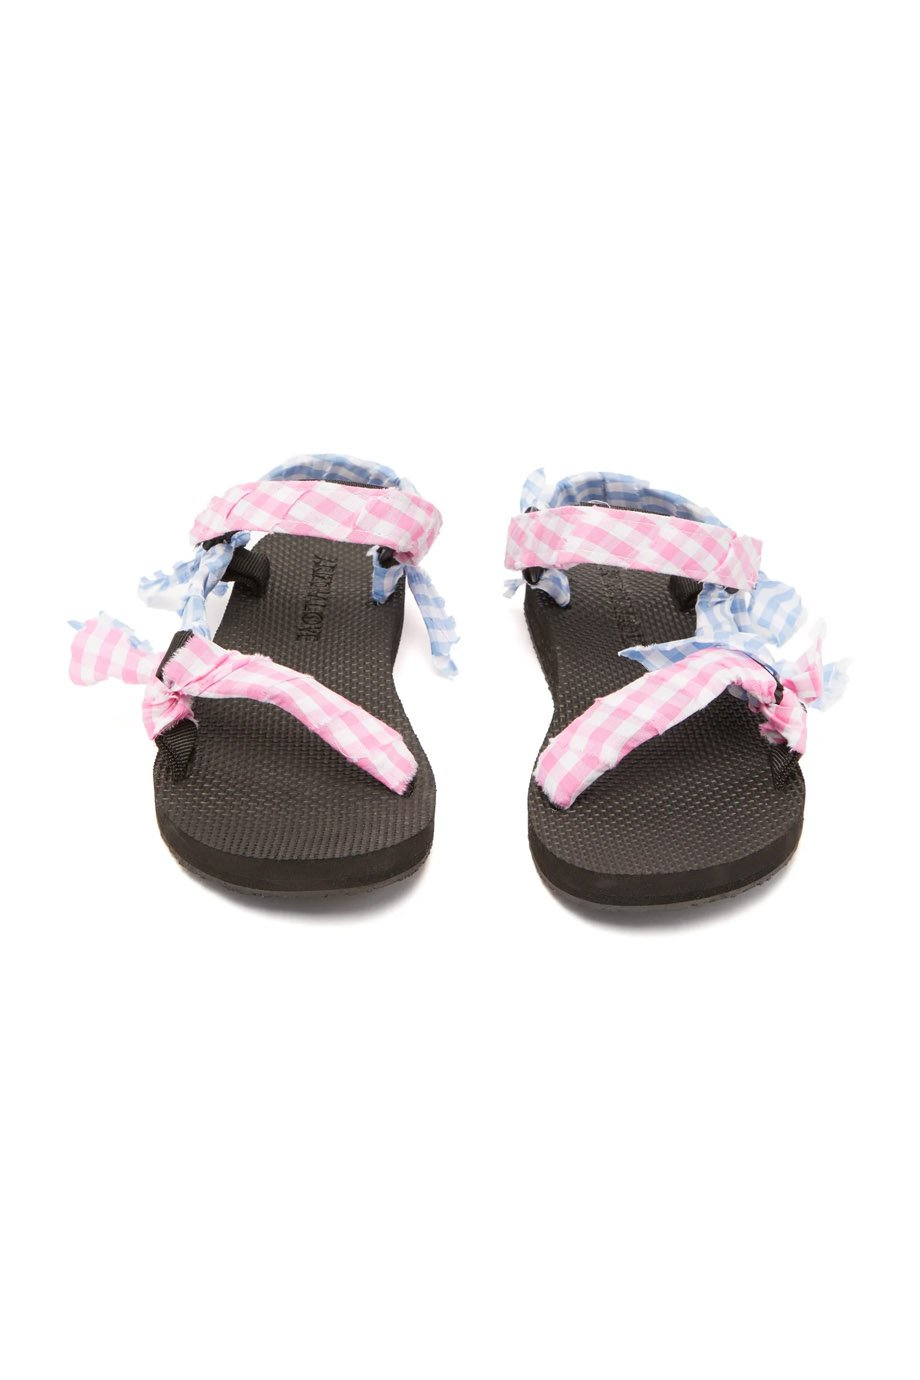 VICHY SANDALS PINK BLUE CHECK